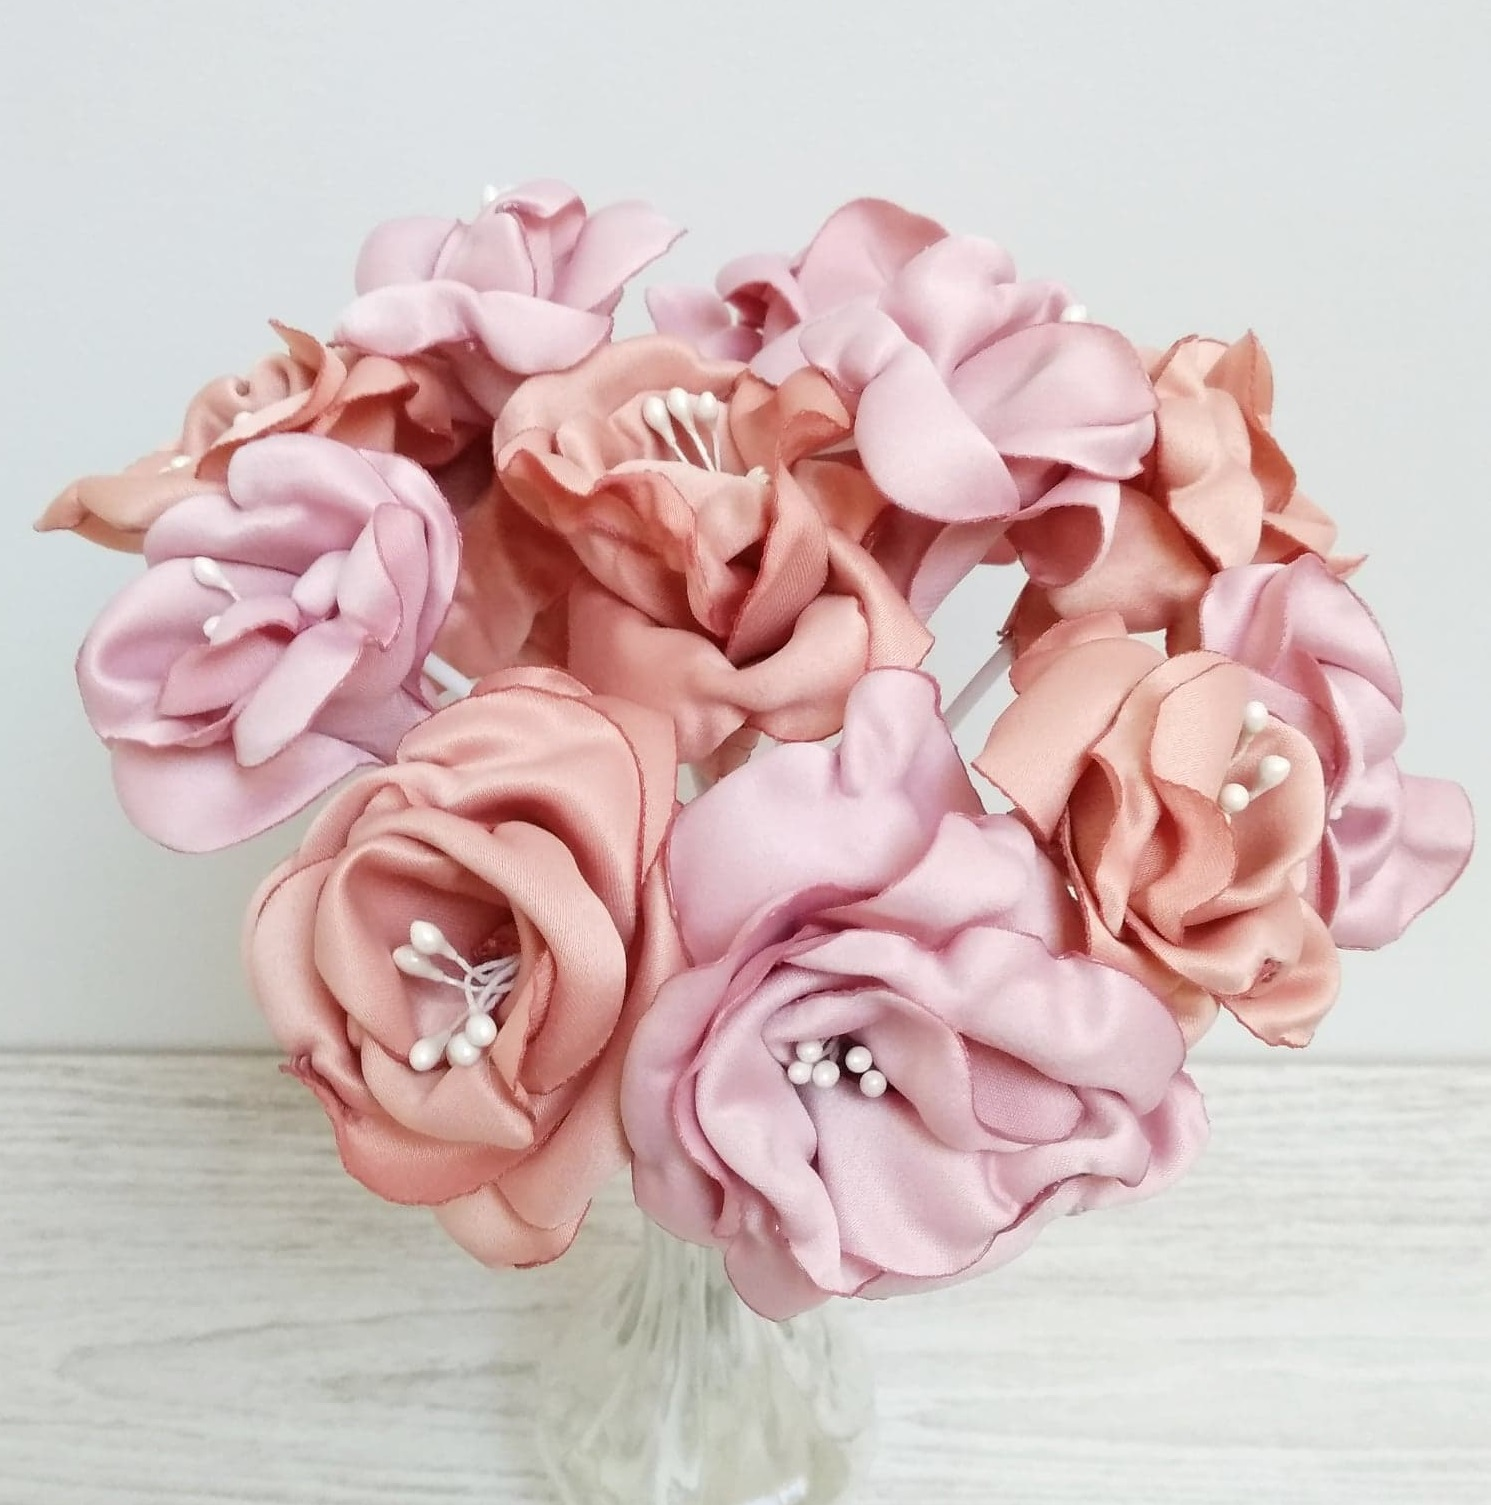 Bouquet roses anciennes 1 Alice Marty - Couture florale Accessoires Mariage